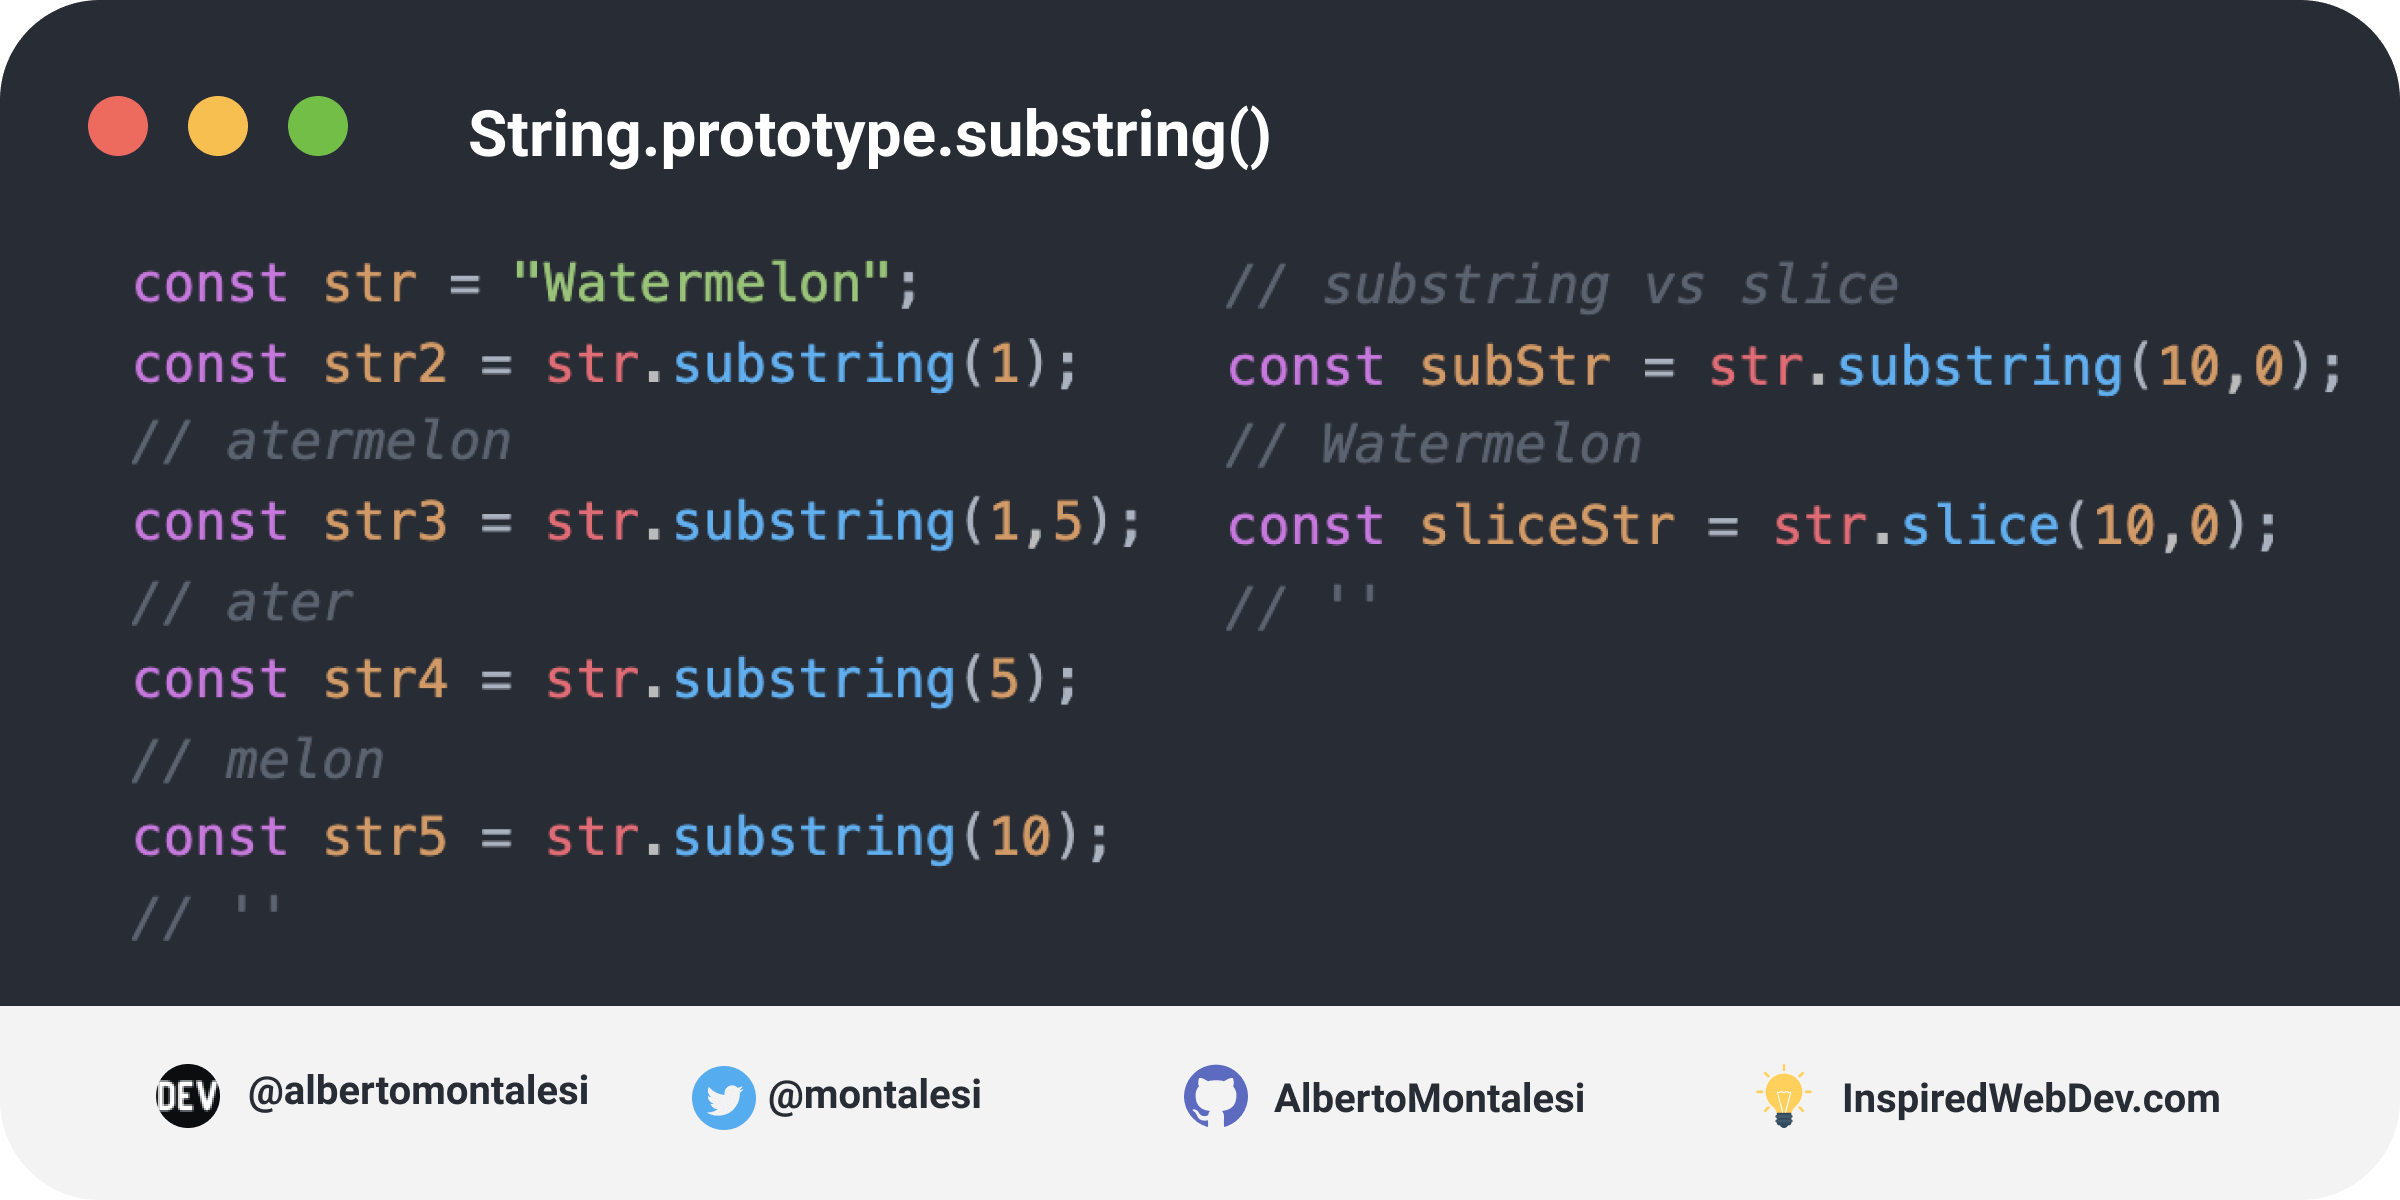 String.prototype.substring()